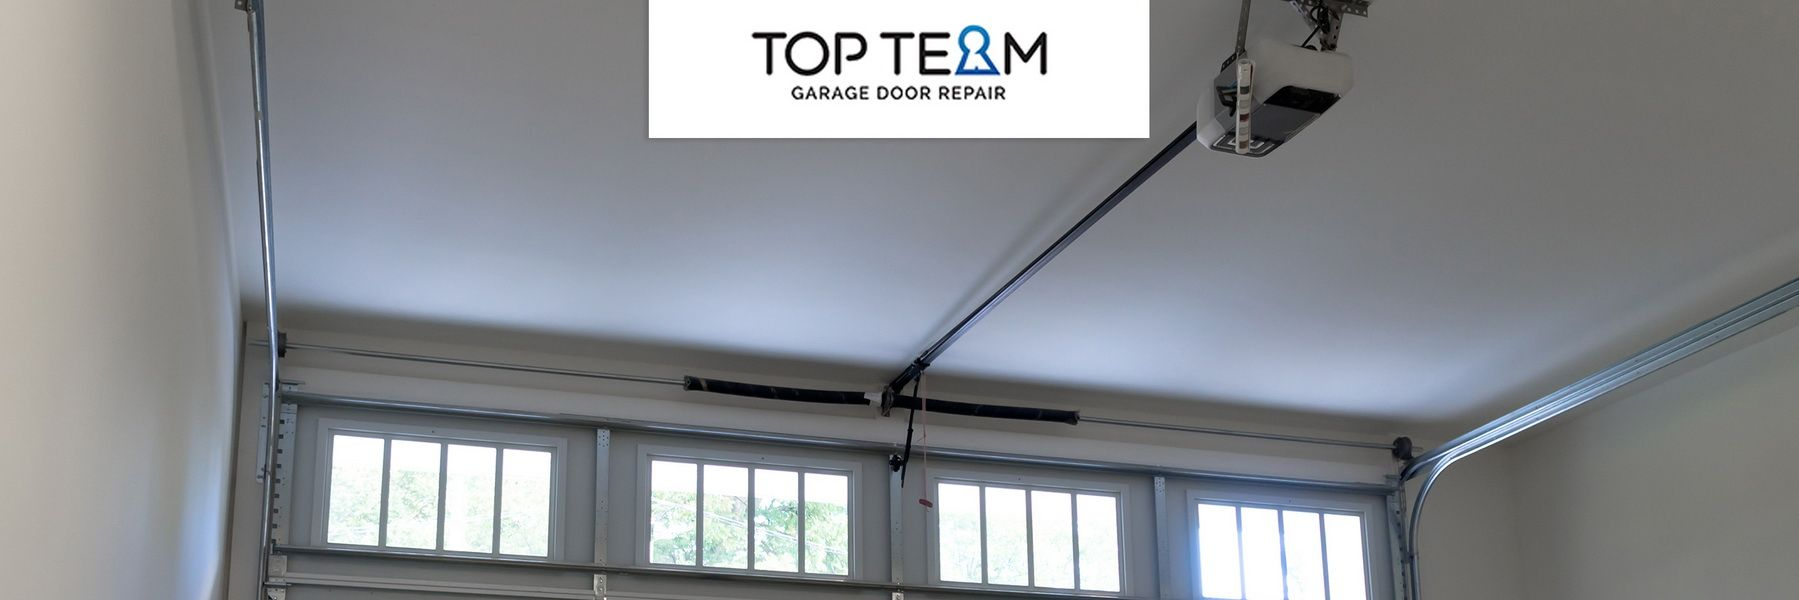 Top Team Garage Door Repair Services